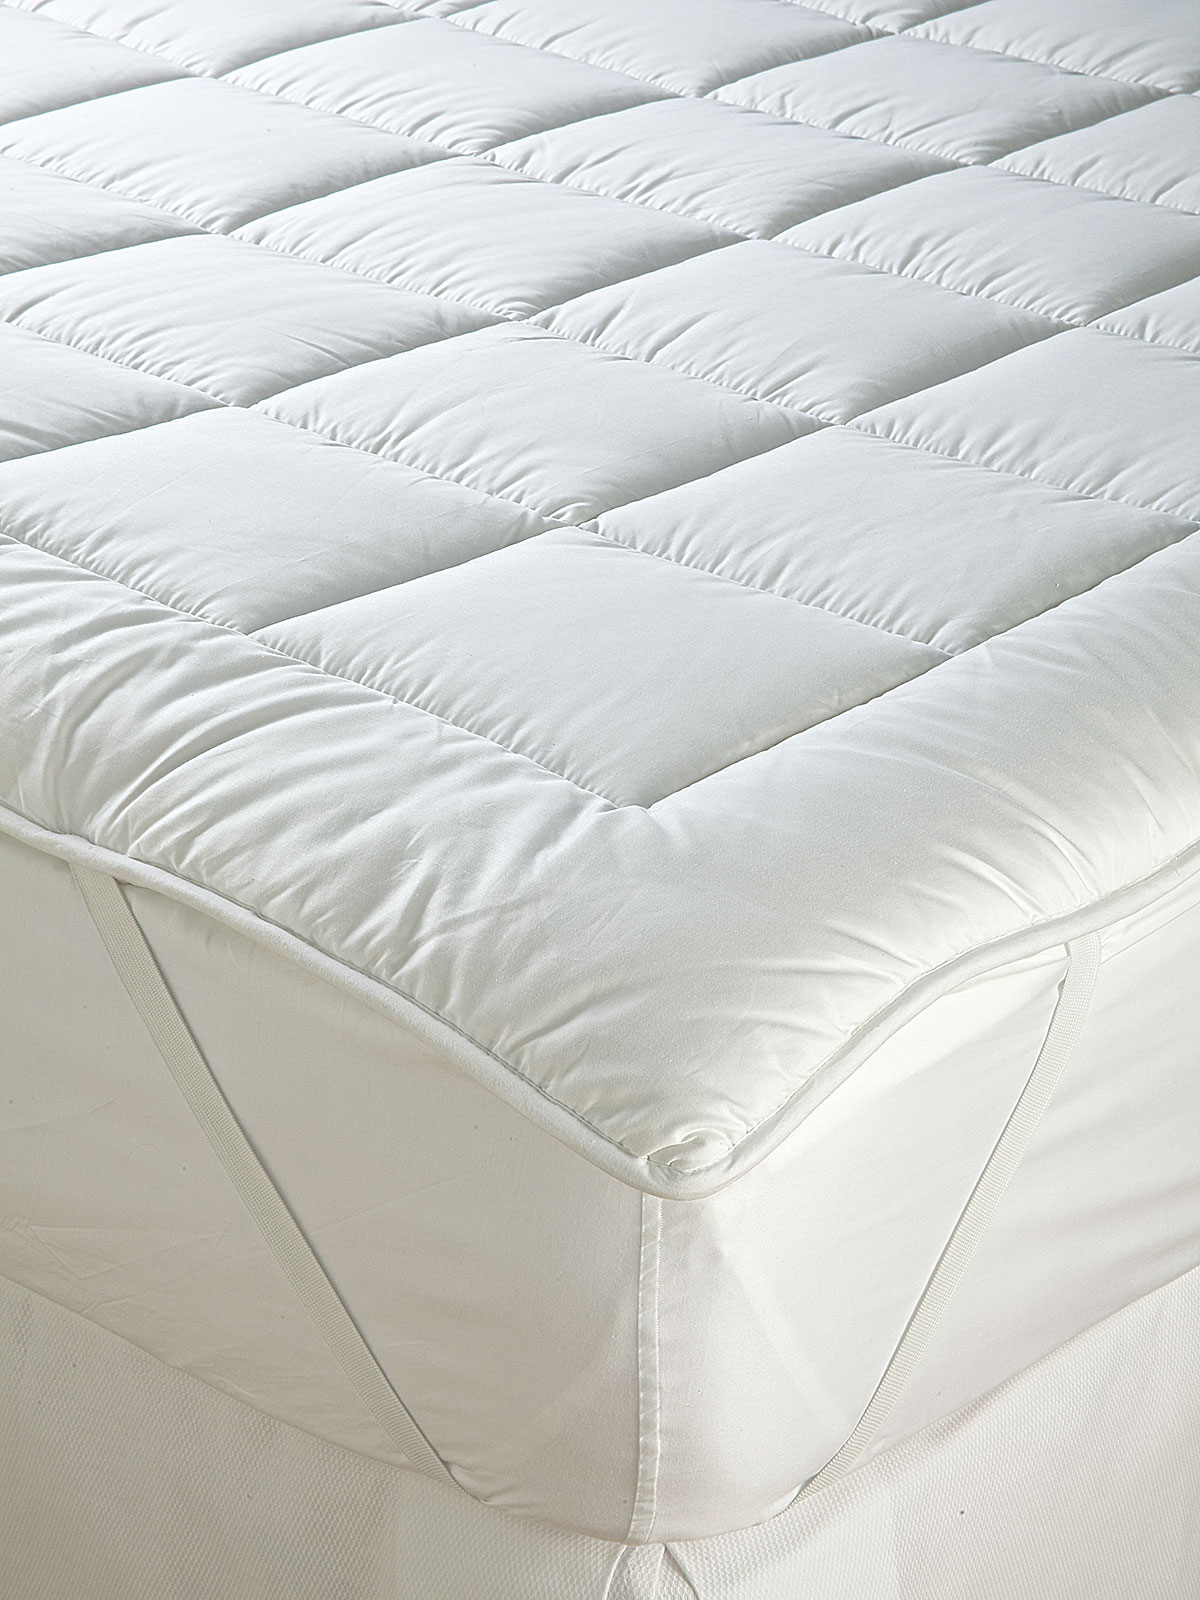 Washable Wool Mattress Pad Luxury Mattress Pads Luxury